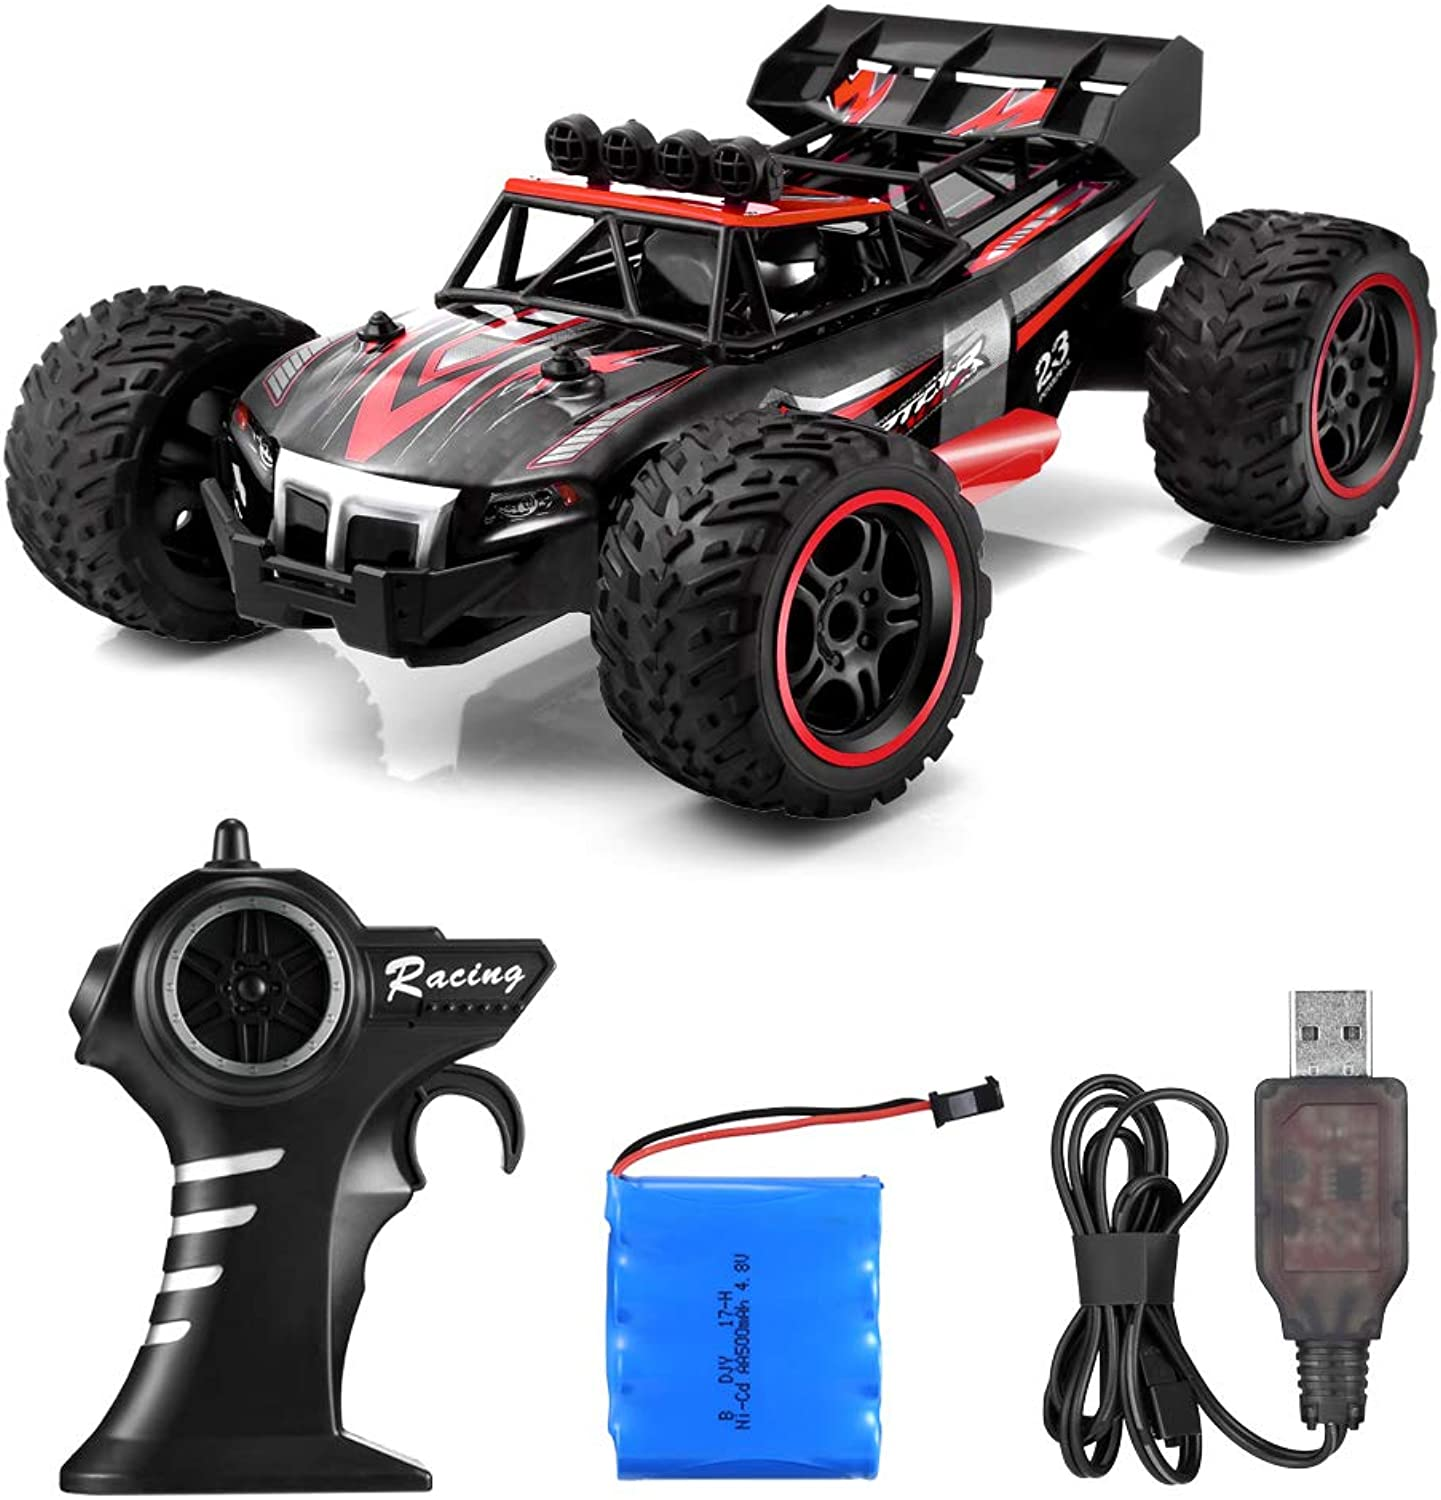 YED 1703 2.4GHz Remote Control High-Speed Racing Car Toy for Boys and Girls